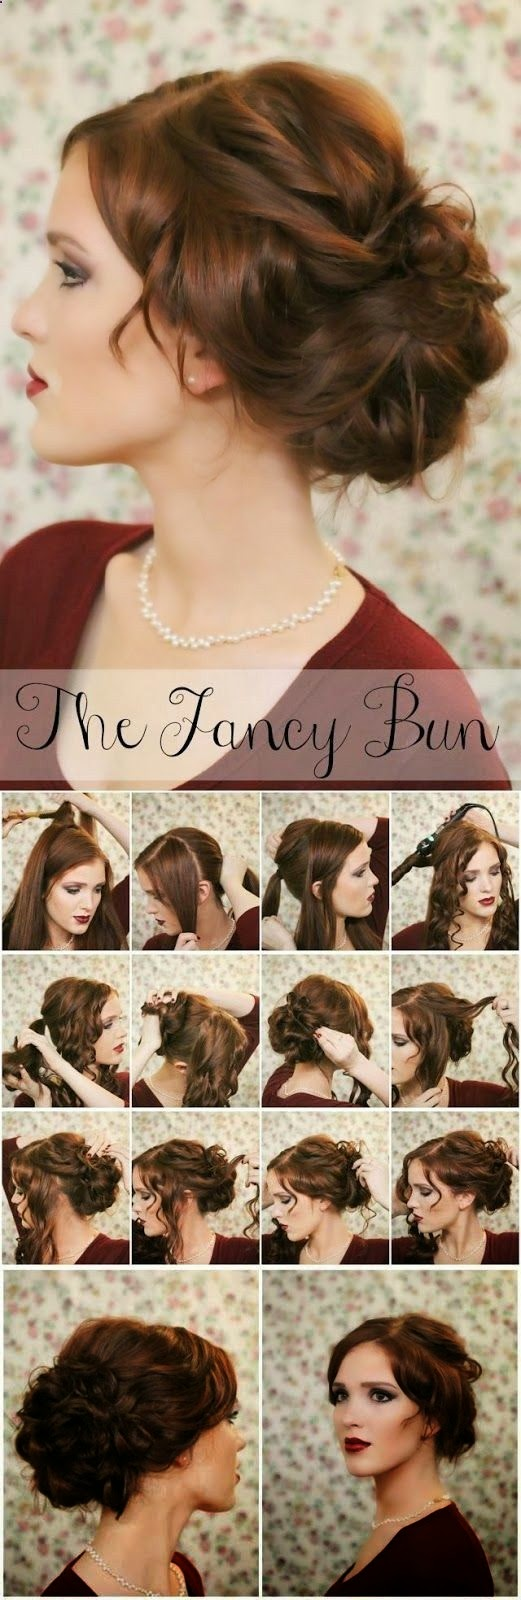 Easy Simple Knotted Bun Updo Hairstyle Tutorials